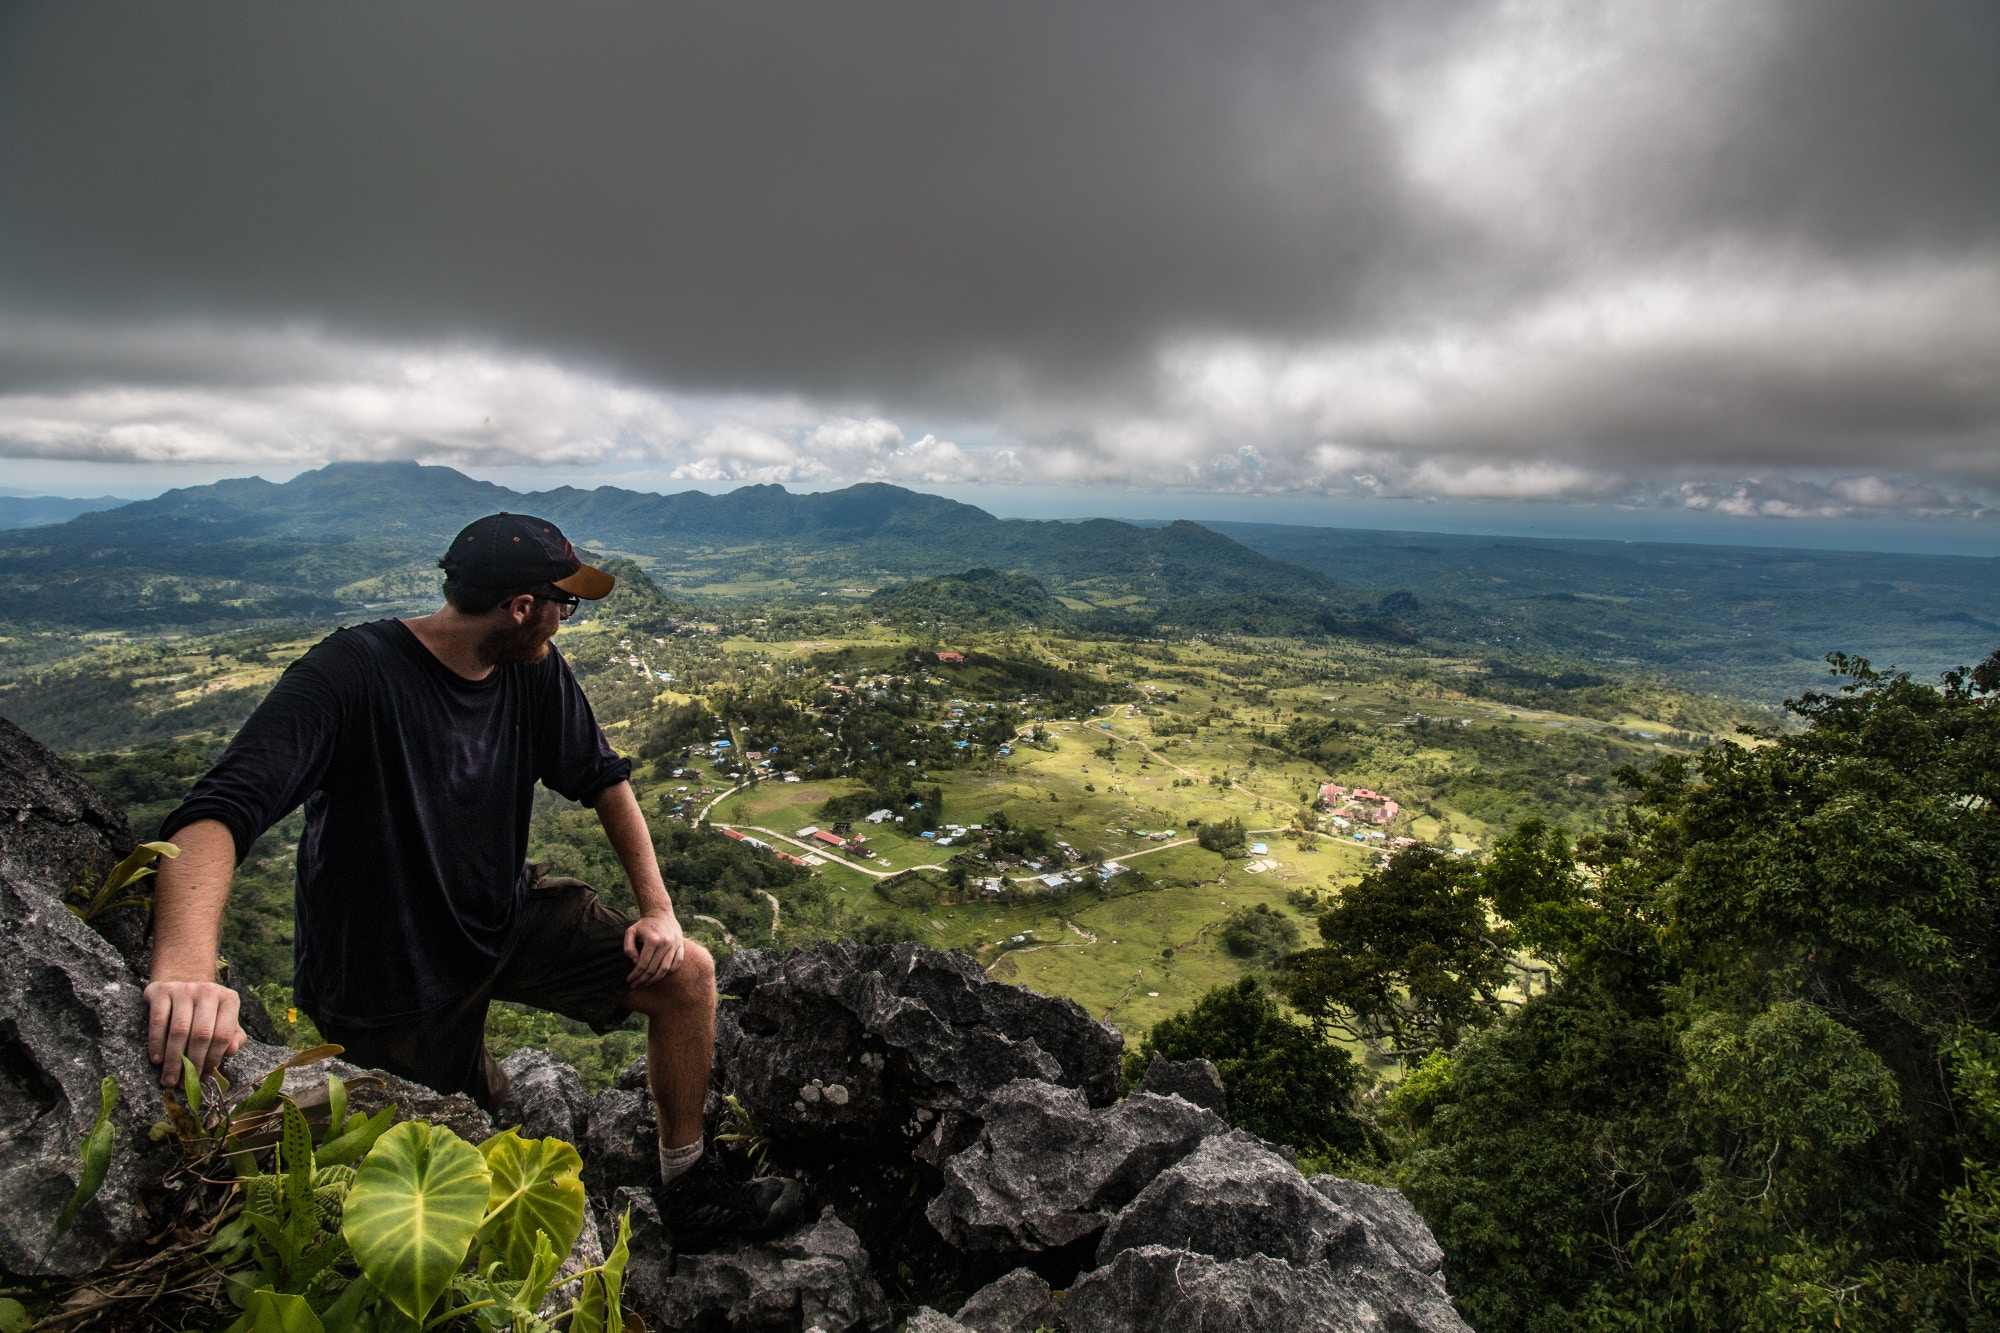 Looking out over the landscape from a mountaintop in East Timor © Richard Collett